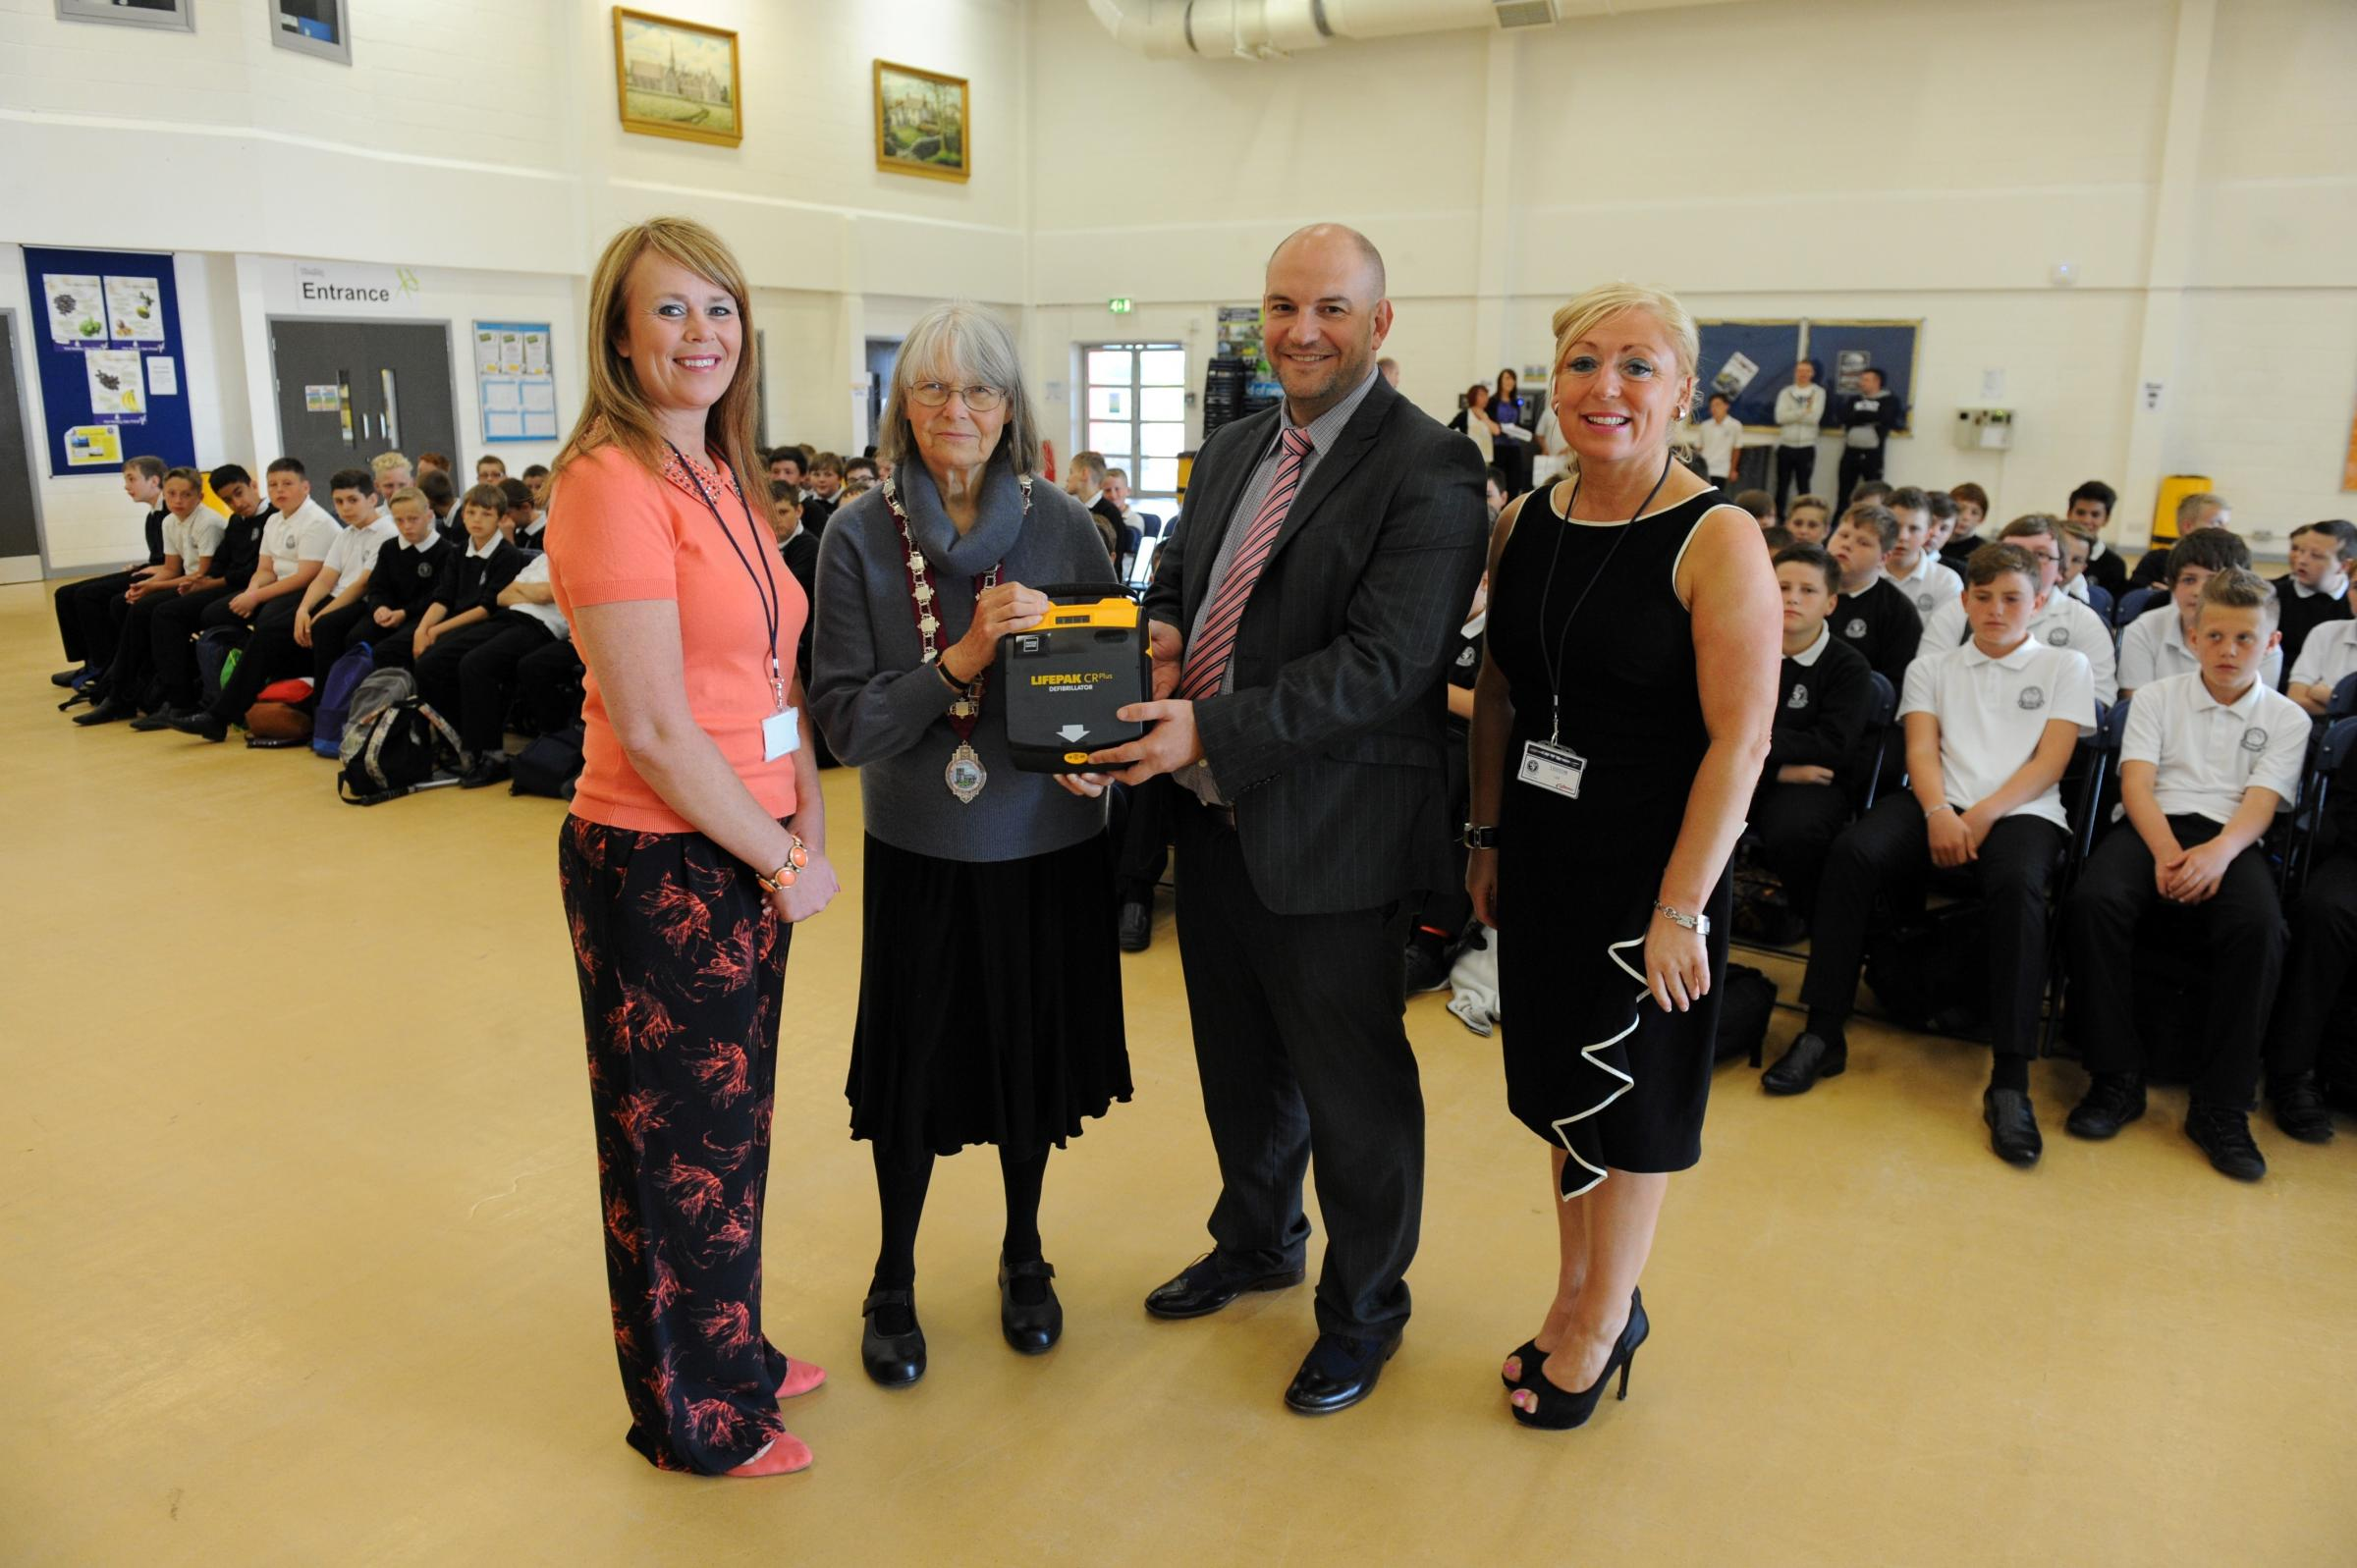 Life-saving device arrives at Pengam school